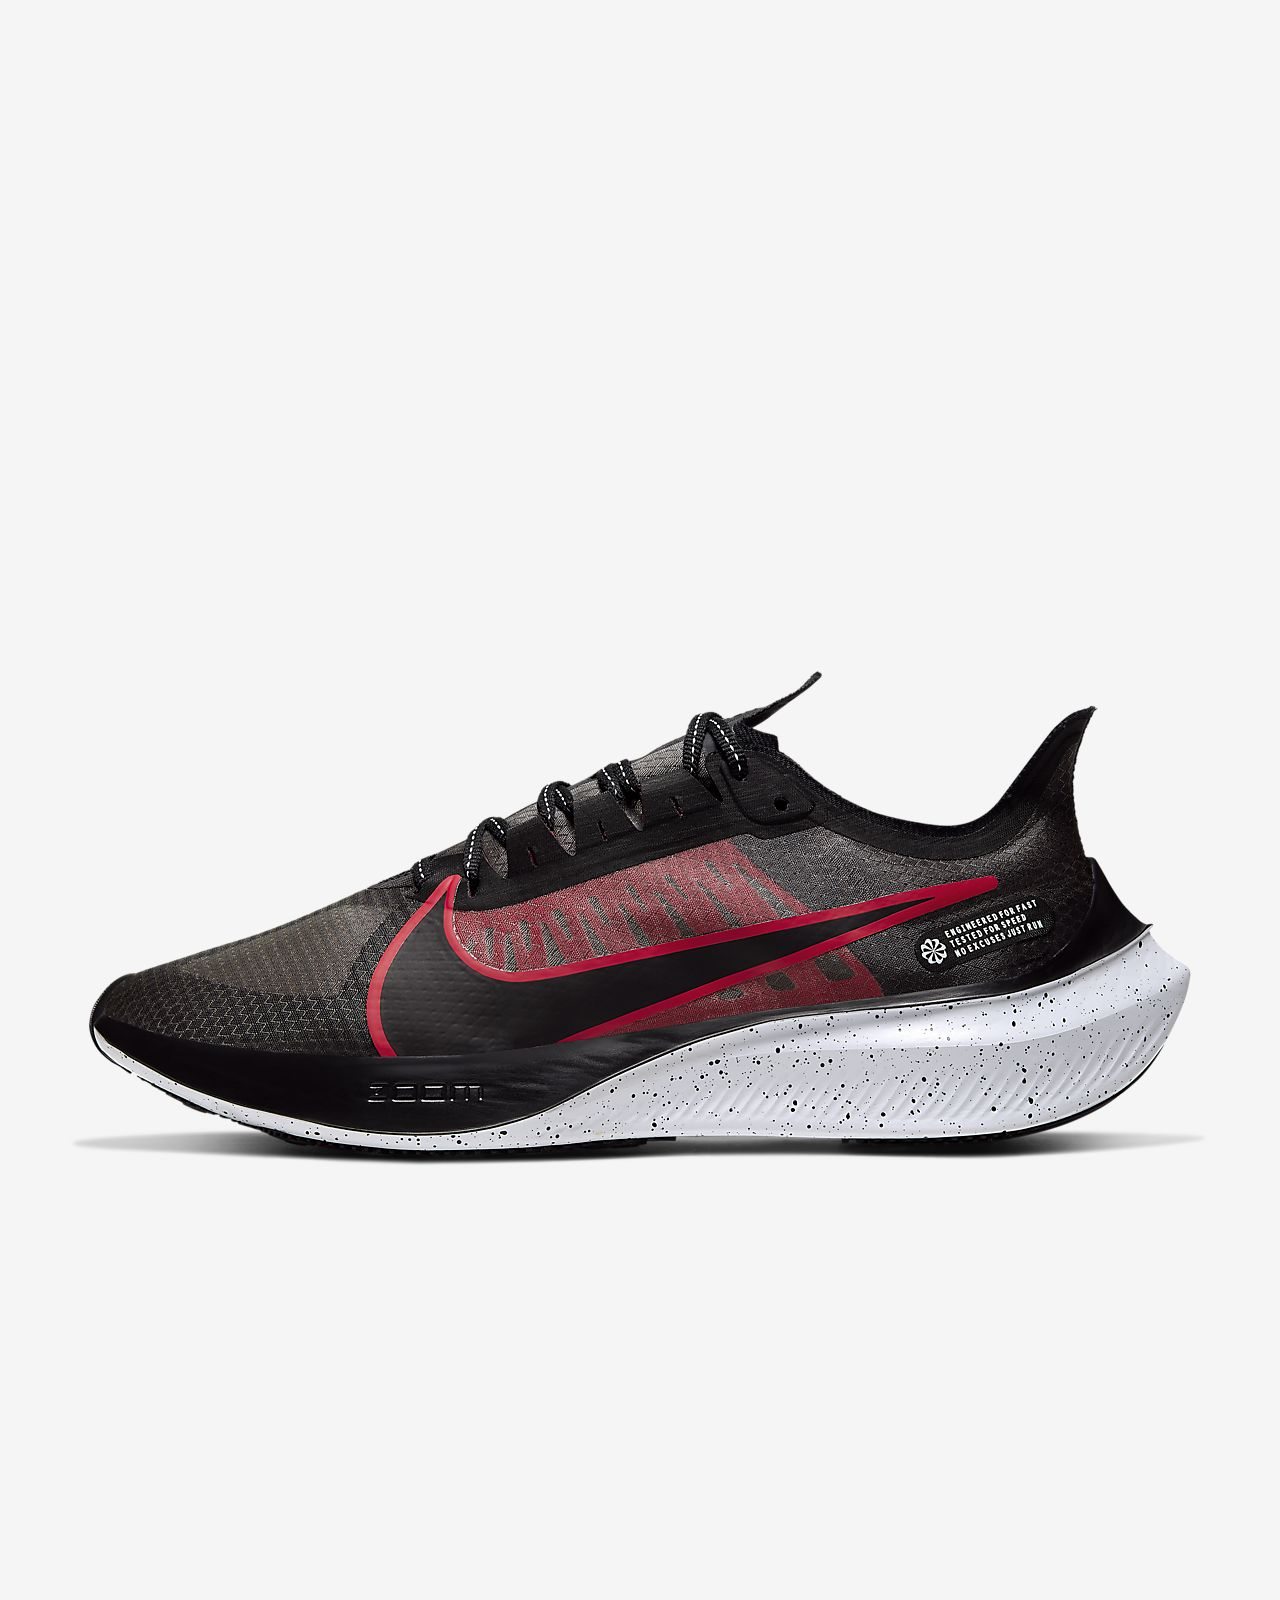 Nike Zoom Gravity Men's Running Shoe